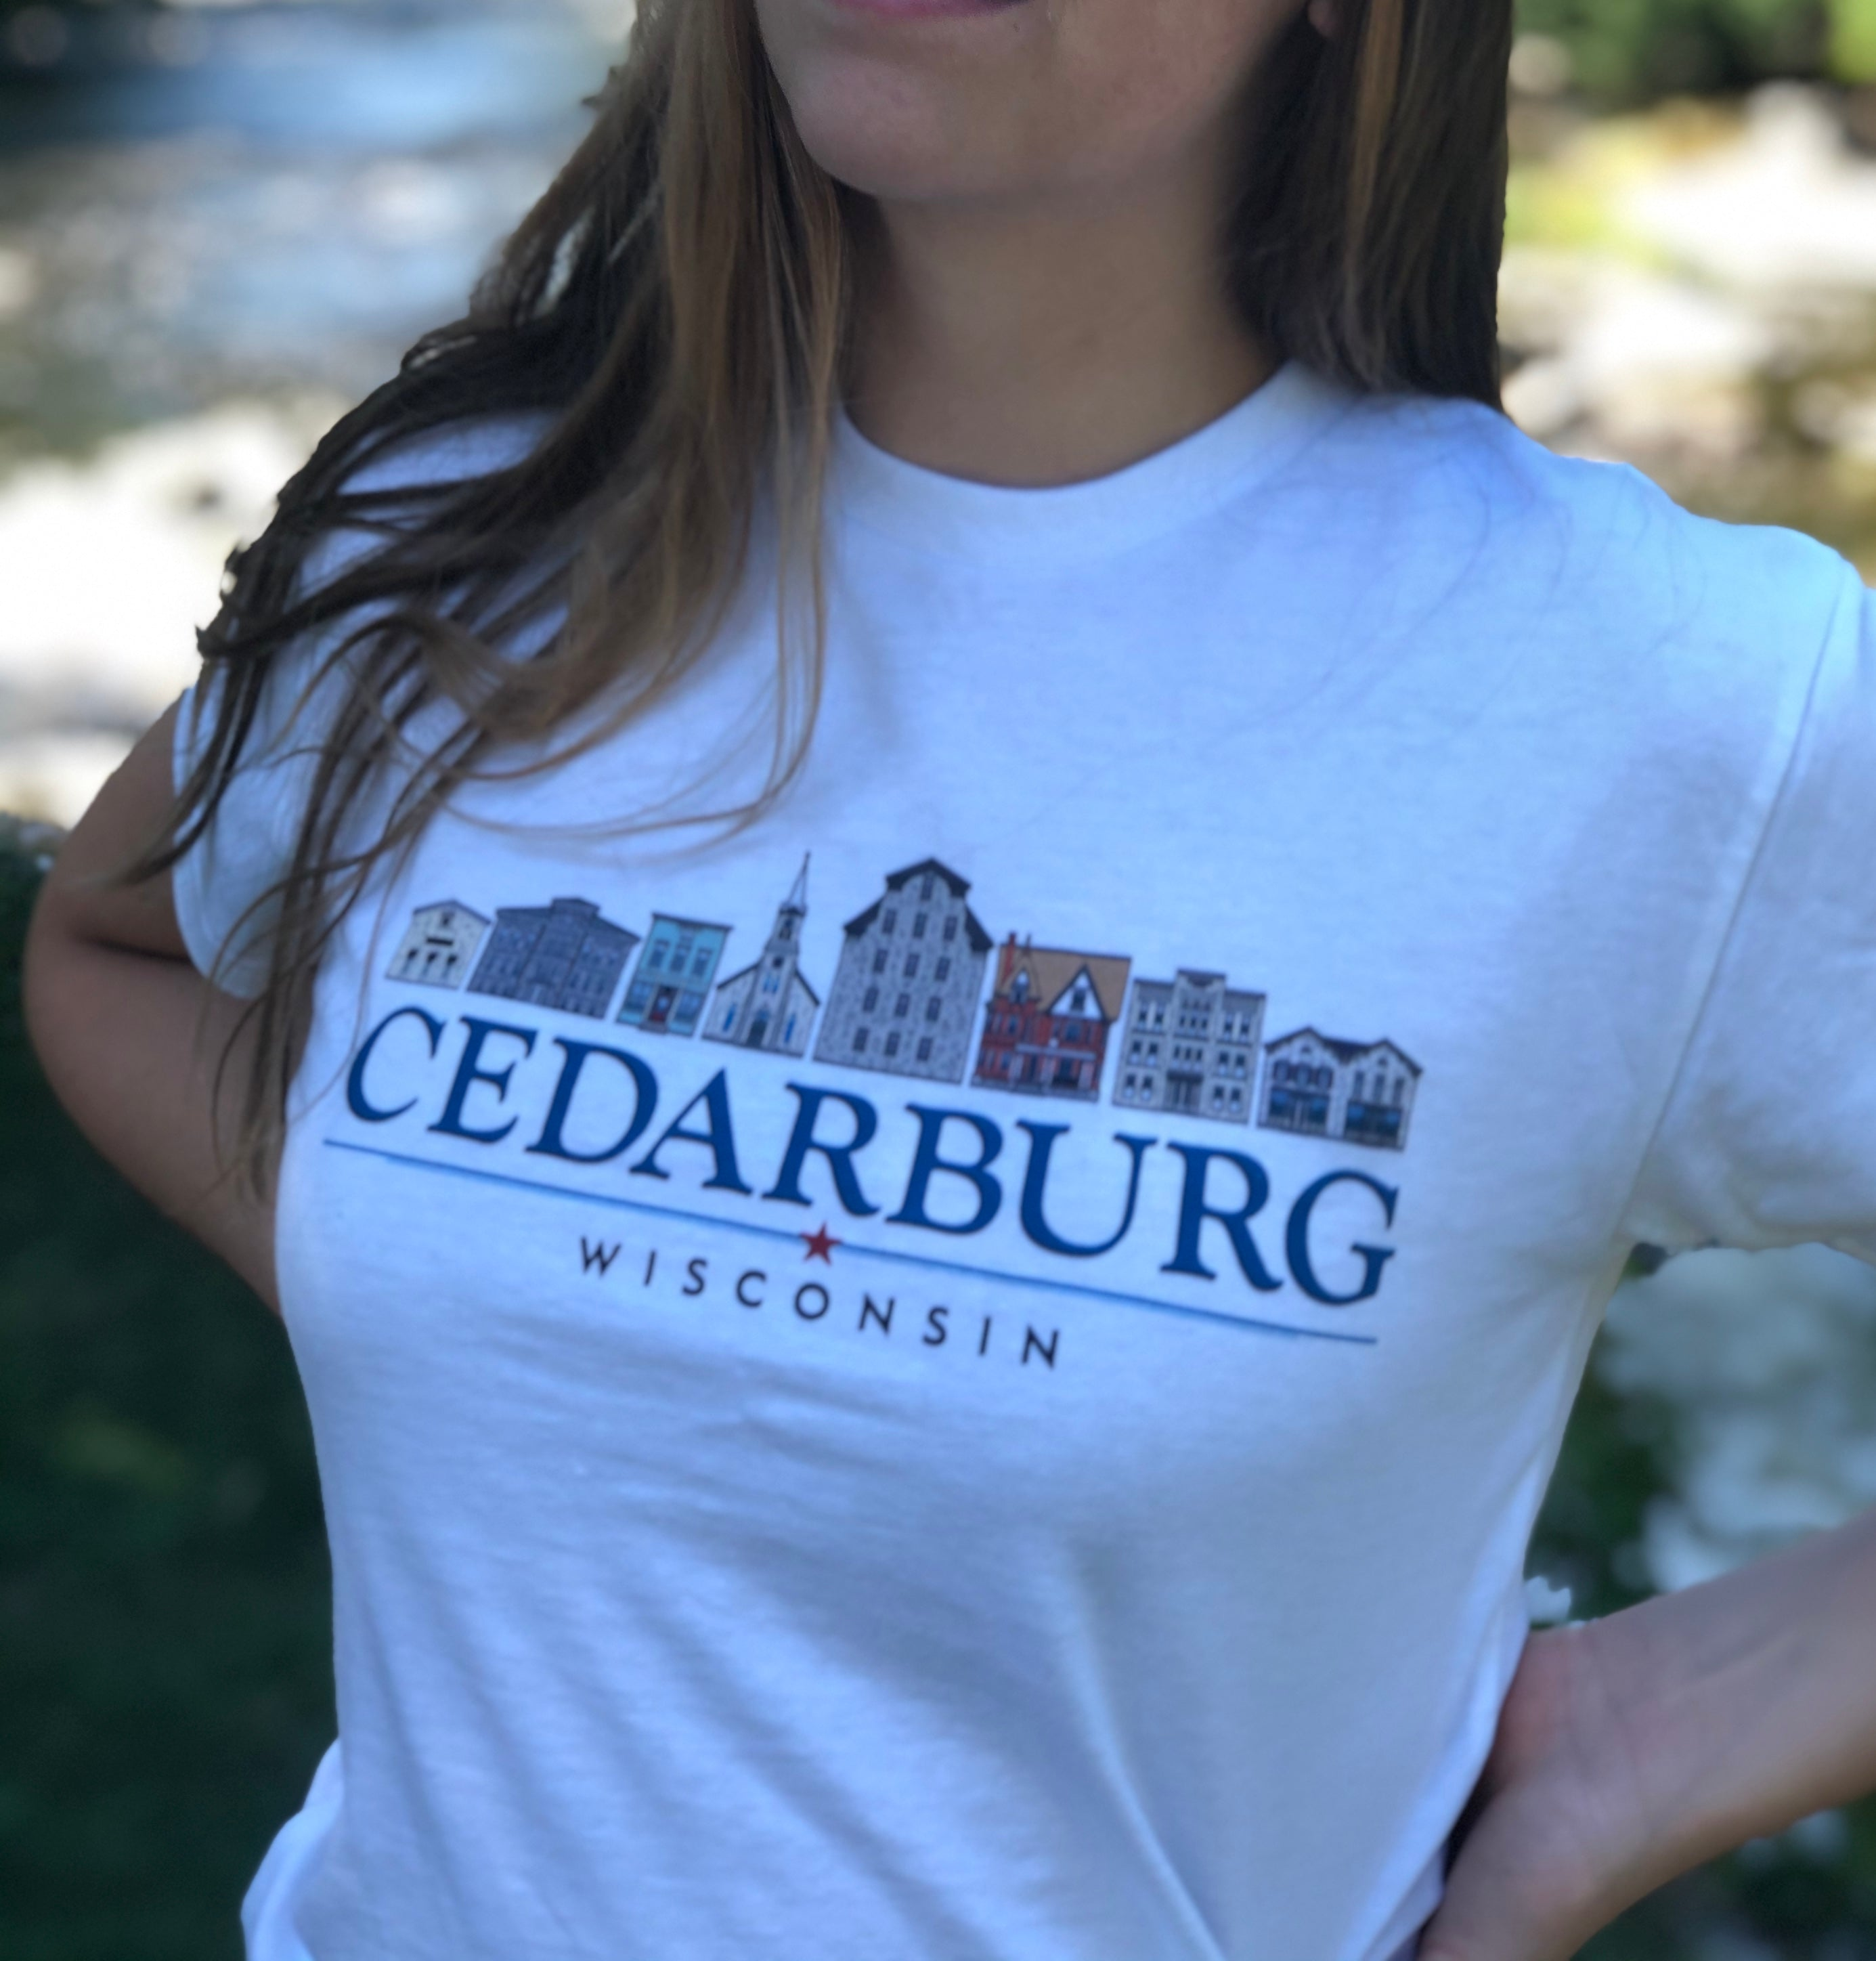 Unisex eco white t-shirt with Downtown Cedarburg color design